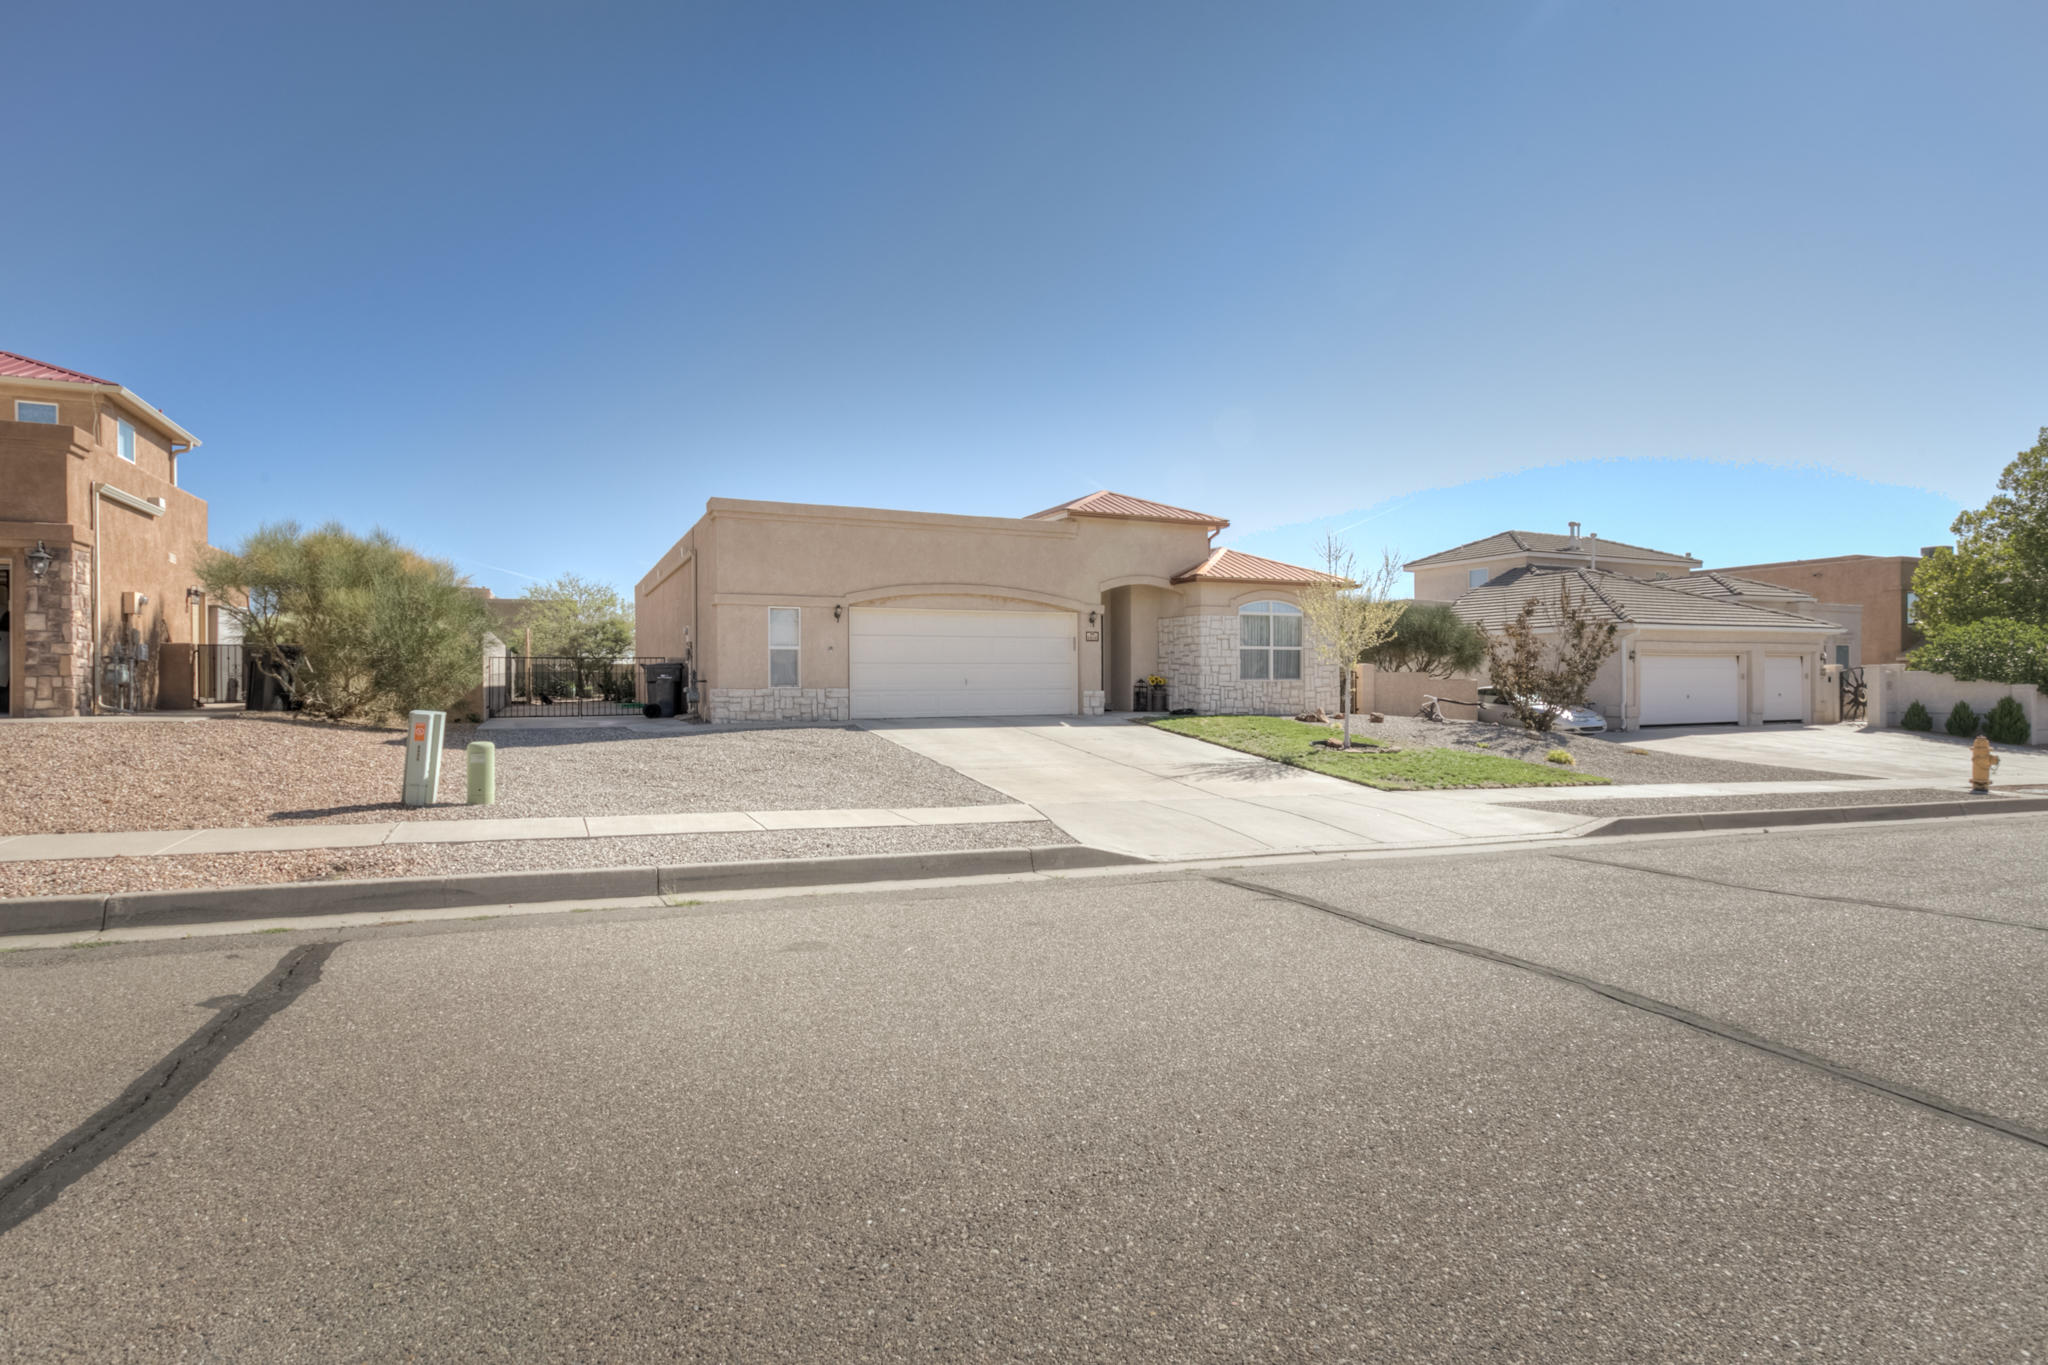 6616 FREEMONT HILLS Loop NE Property Photo - Rio Rancho, NM real estate listing